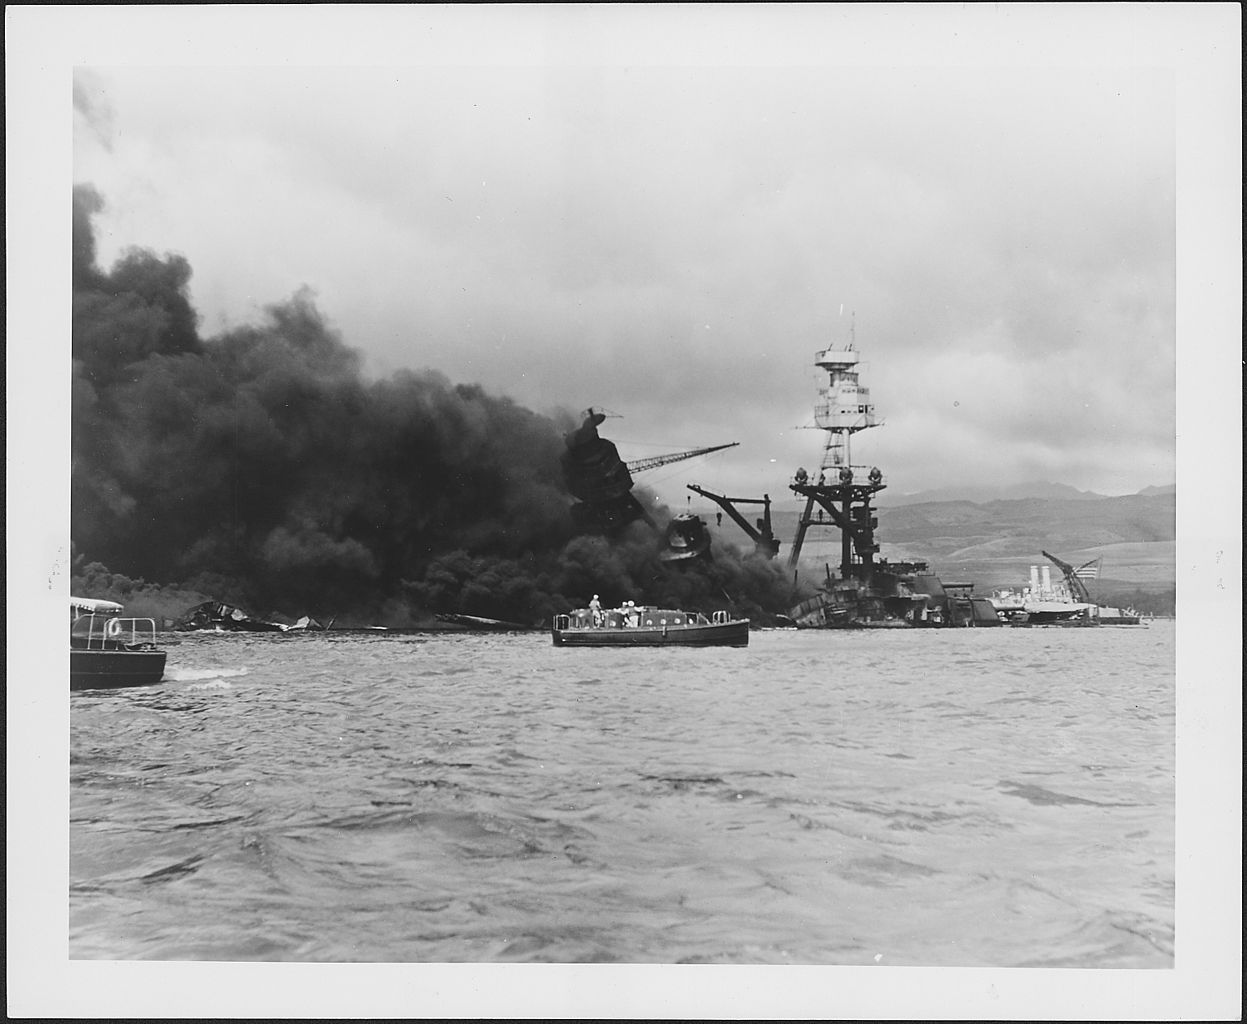 Photograph of the U.S.S. Arizona on fire after the Japanese attack on Pearl Harbor.